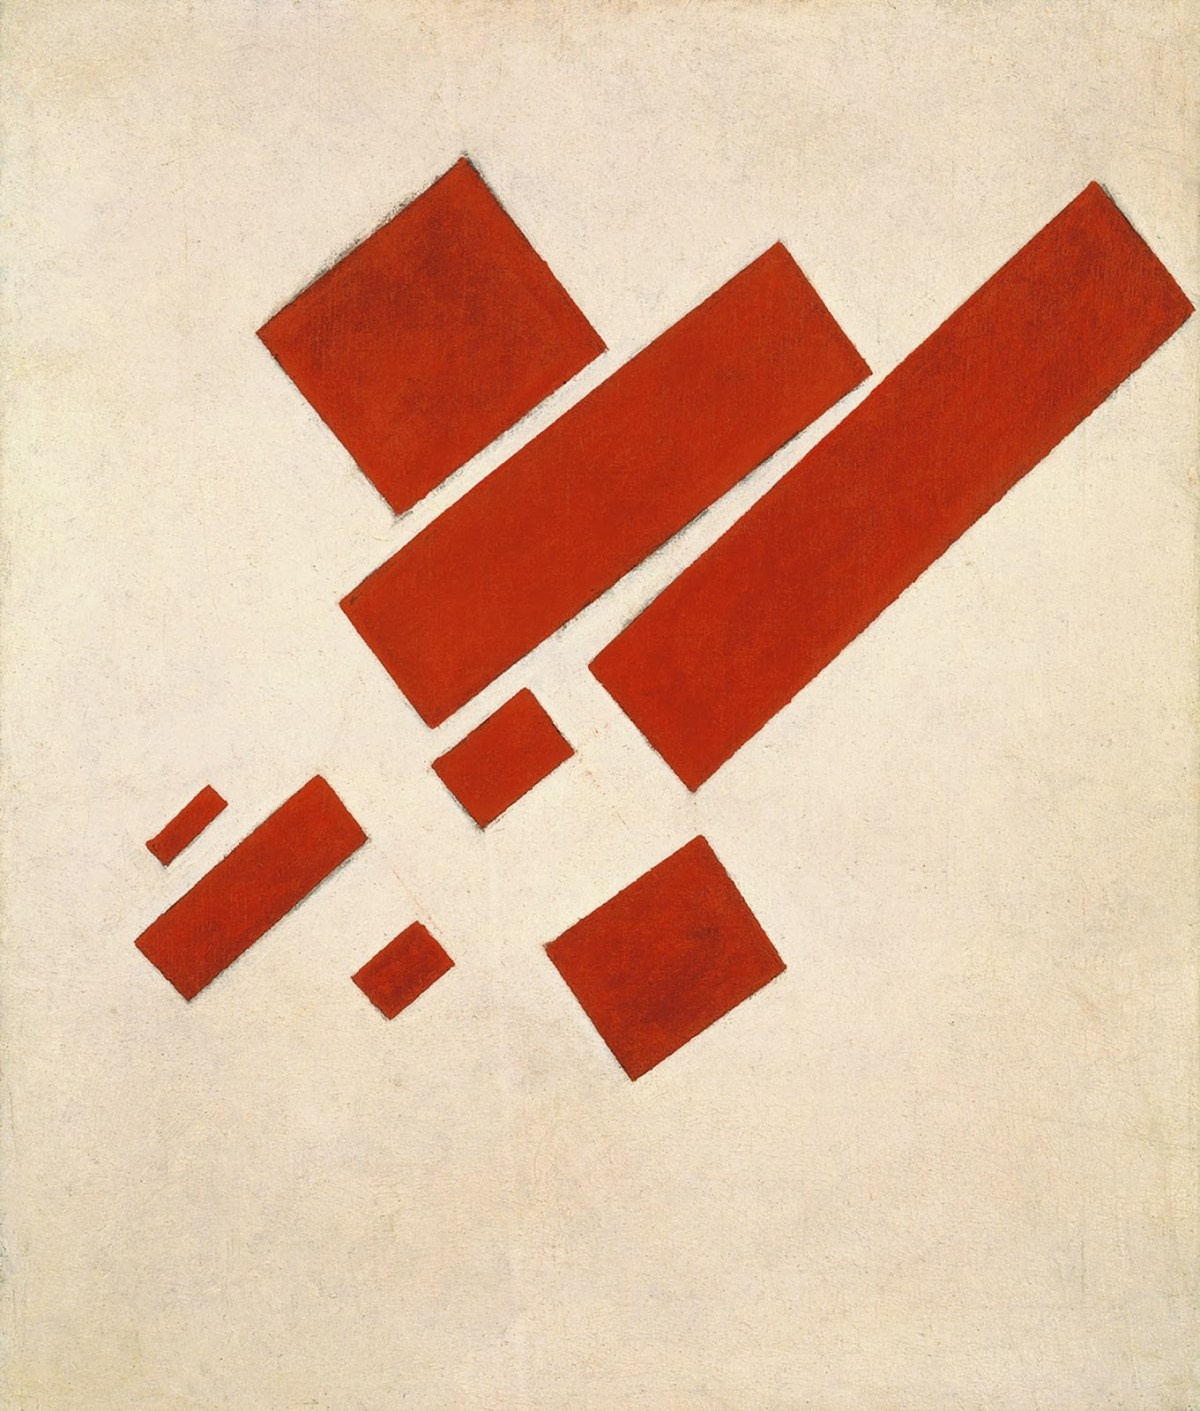 Suprematist Painting Eight Red Rectangles by Kazimir Malevich